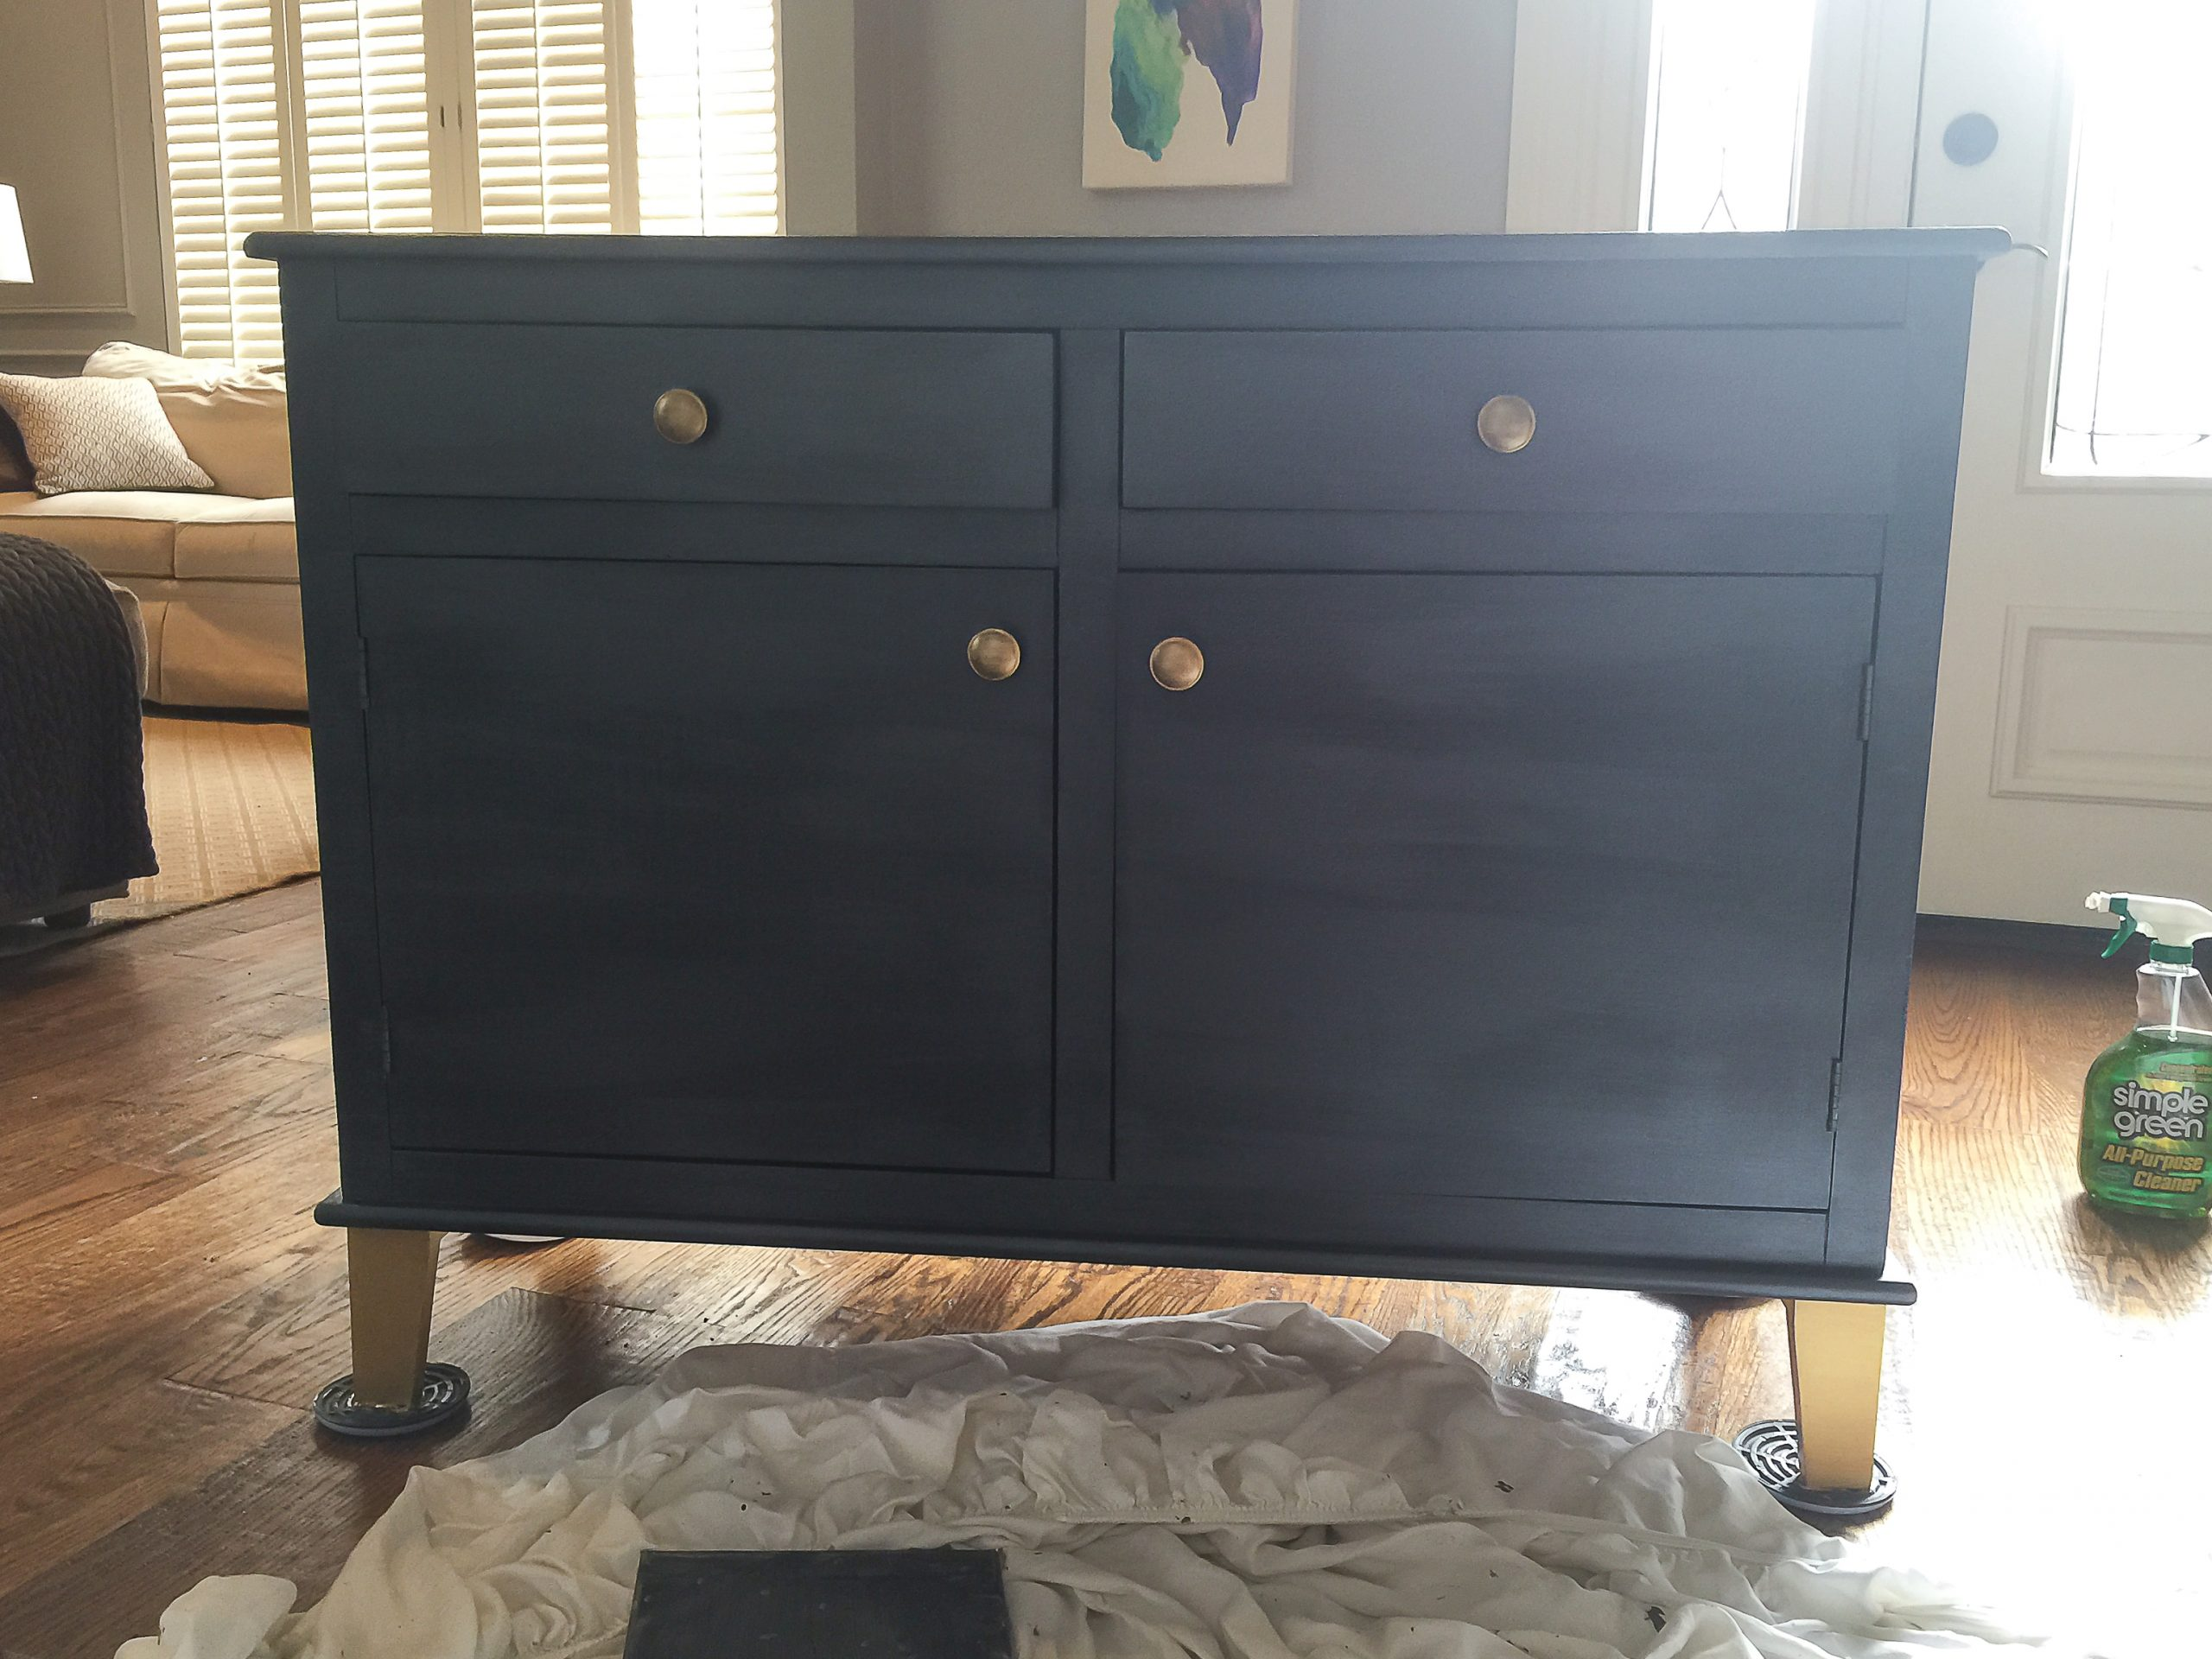 How to Paint an old TV Credenza 2